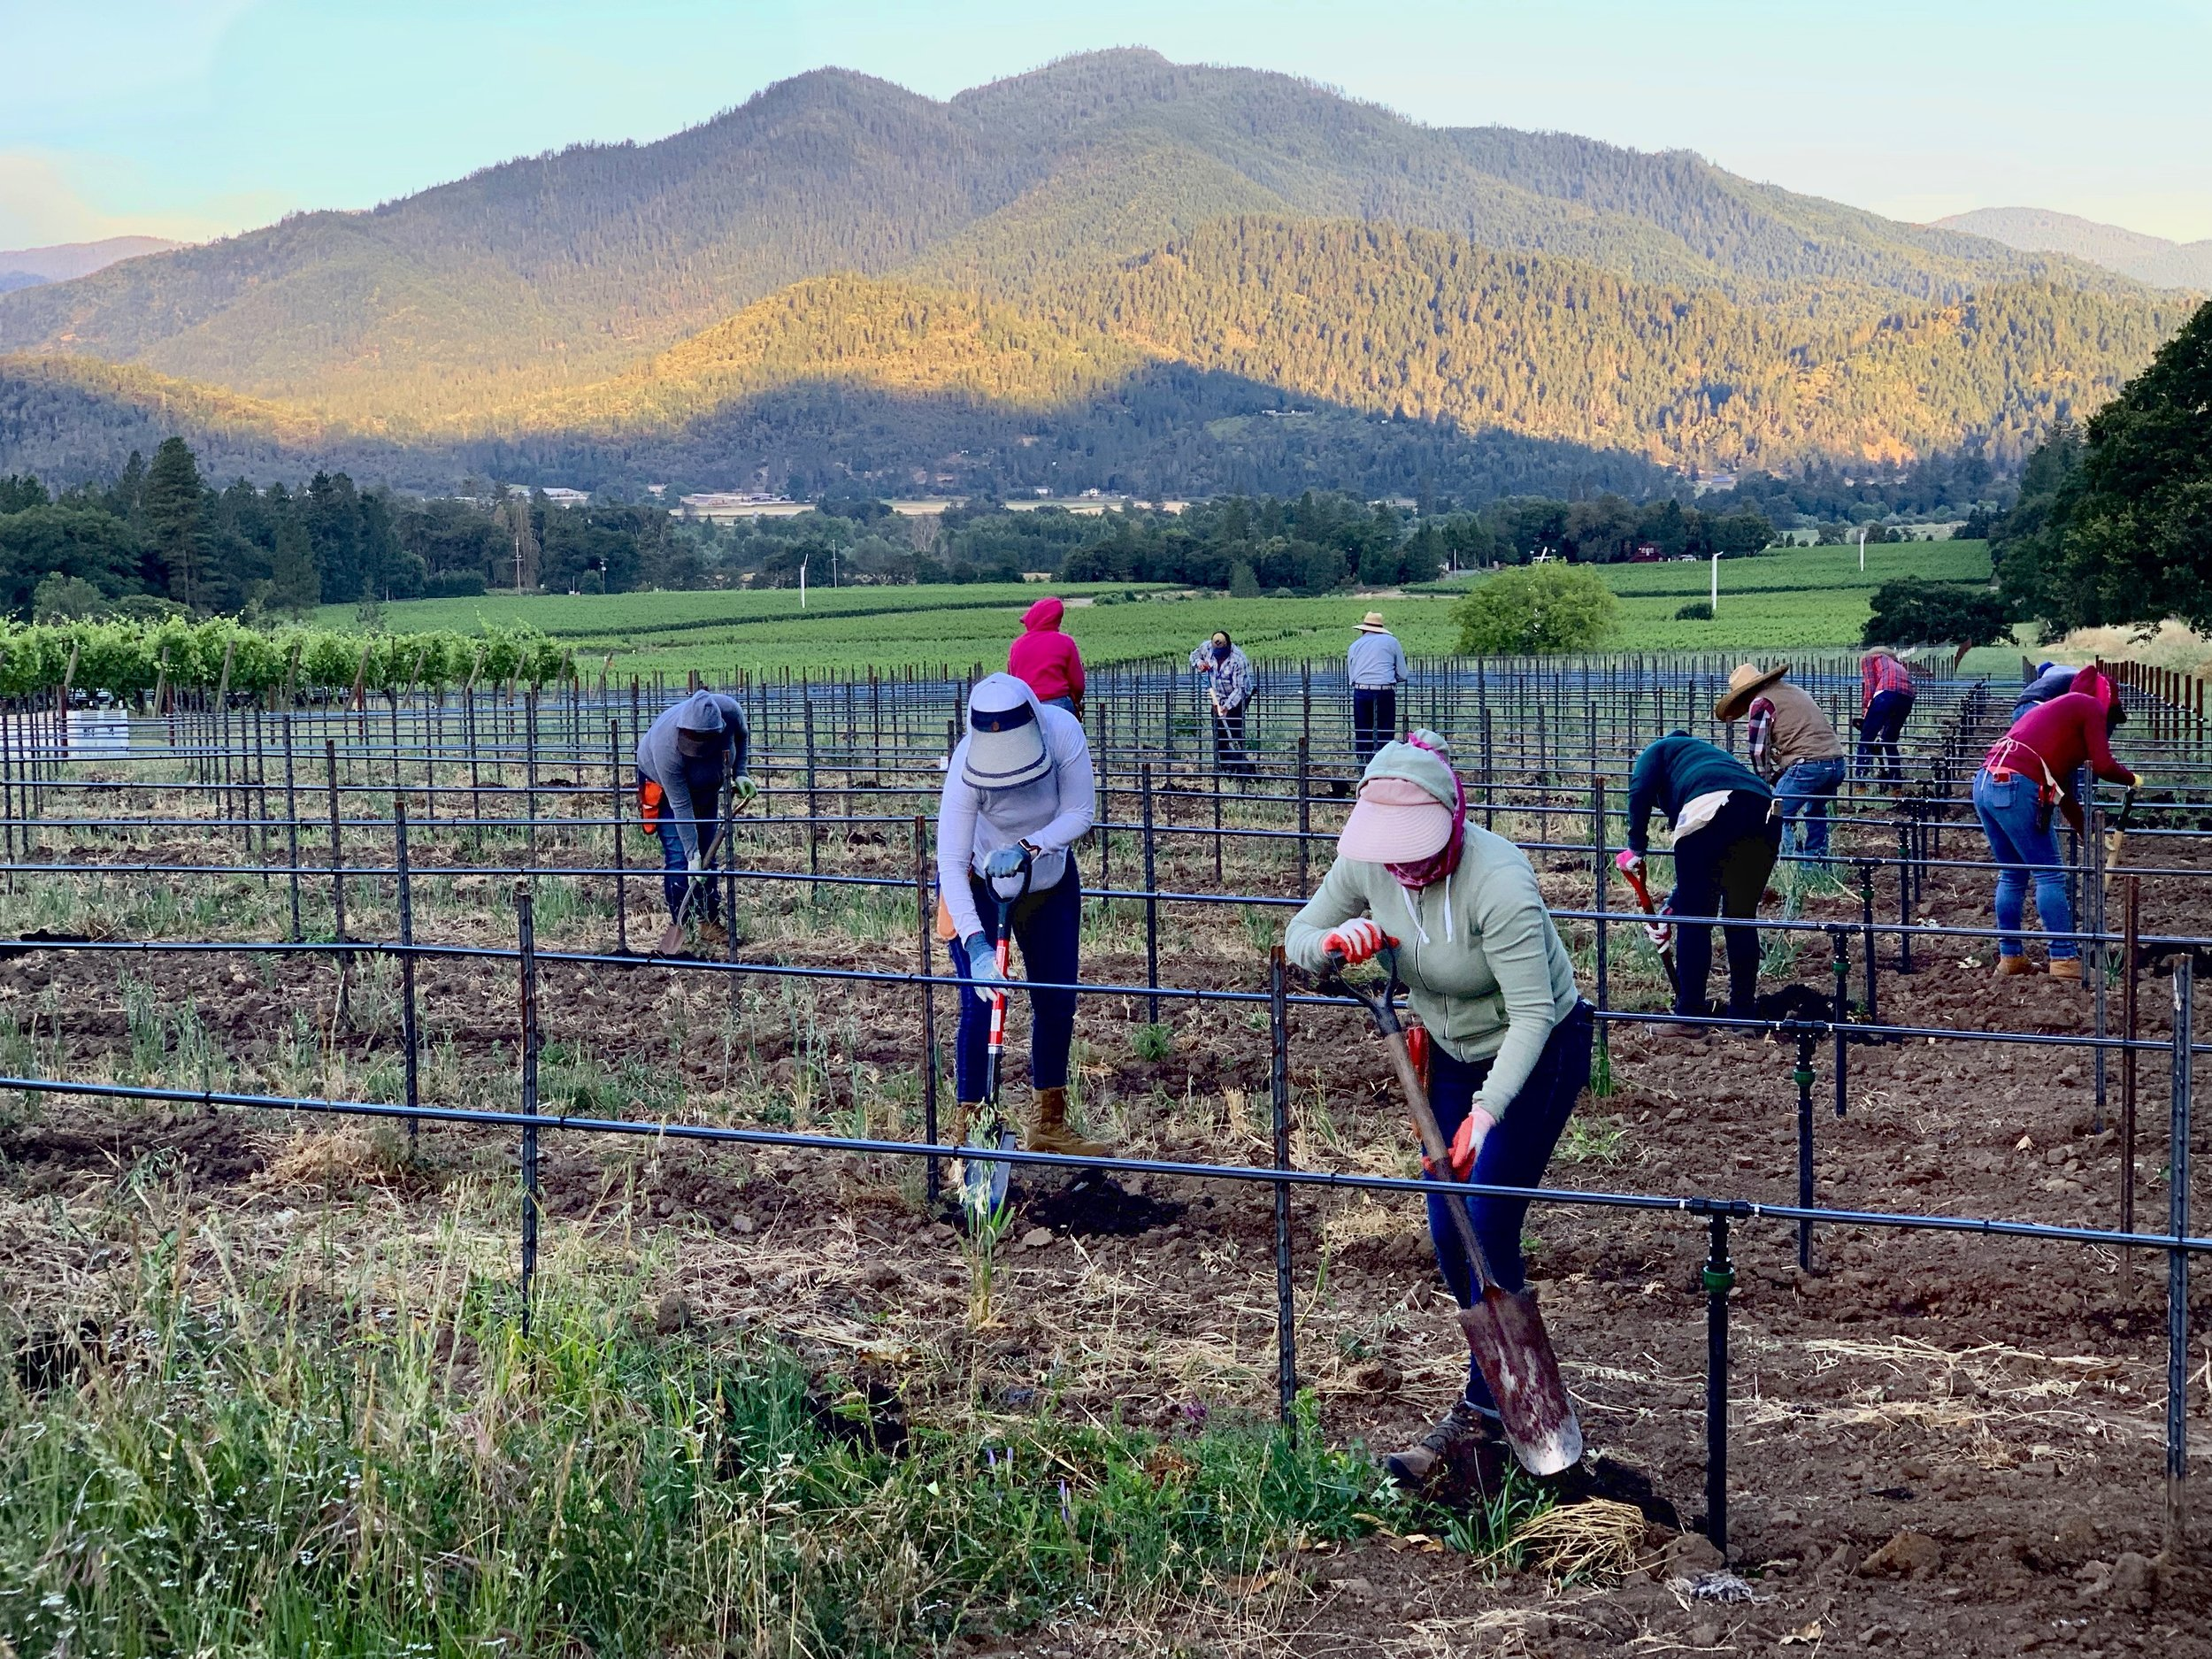 Planting mourvèdre at Troon Vineyard as dawn breaks over the Siskiyou Mountains